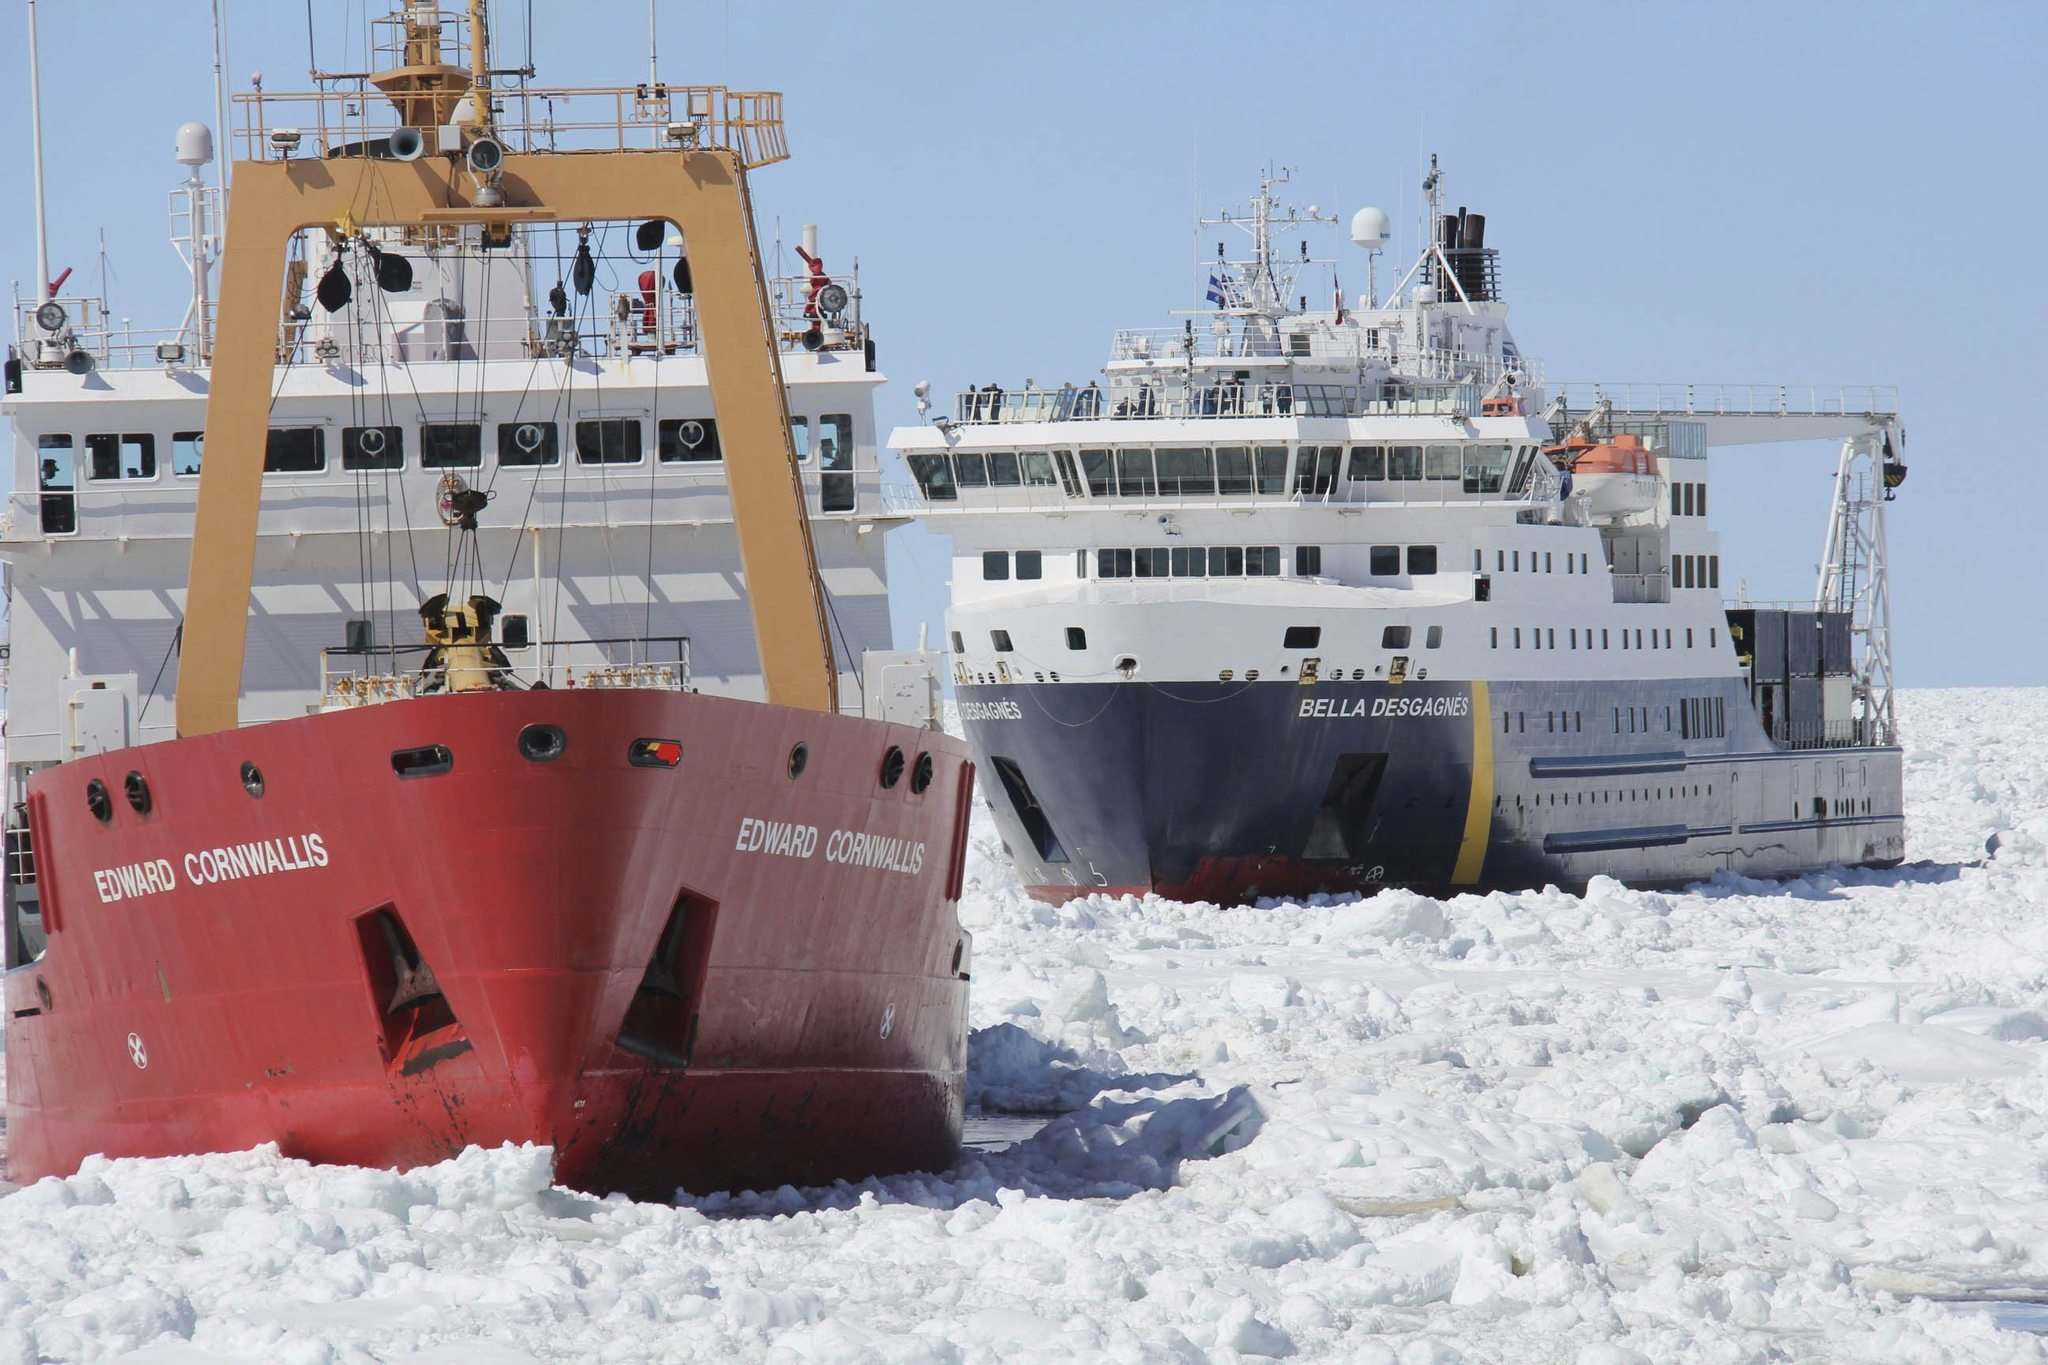 The icebreaker being used by the arctic researchers of the BaySys project is a scientific research ship, but it can be redirected by the Canadian Coast Guard if its icebreaking capabilities are needed.